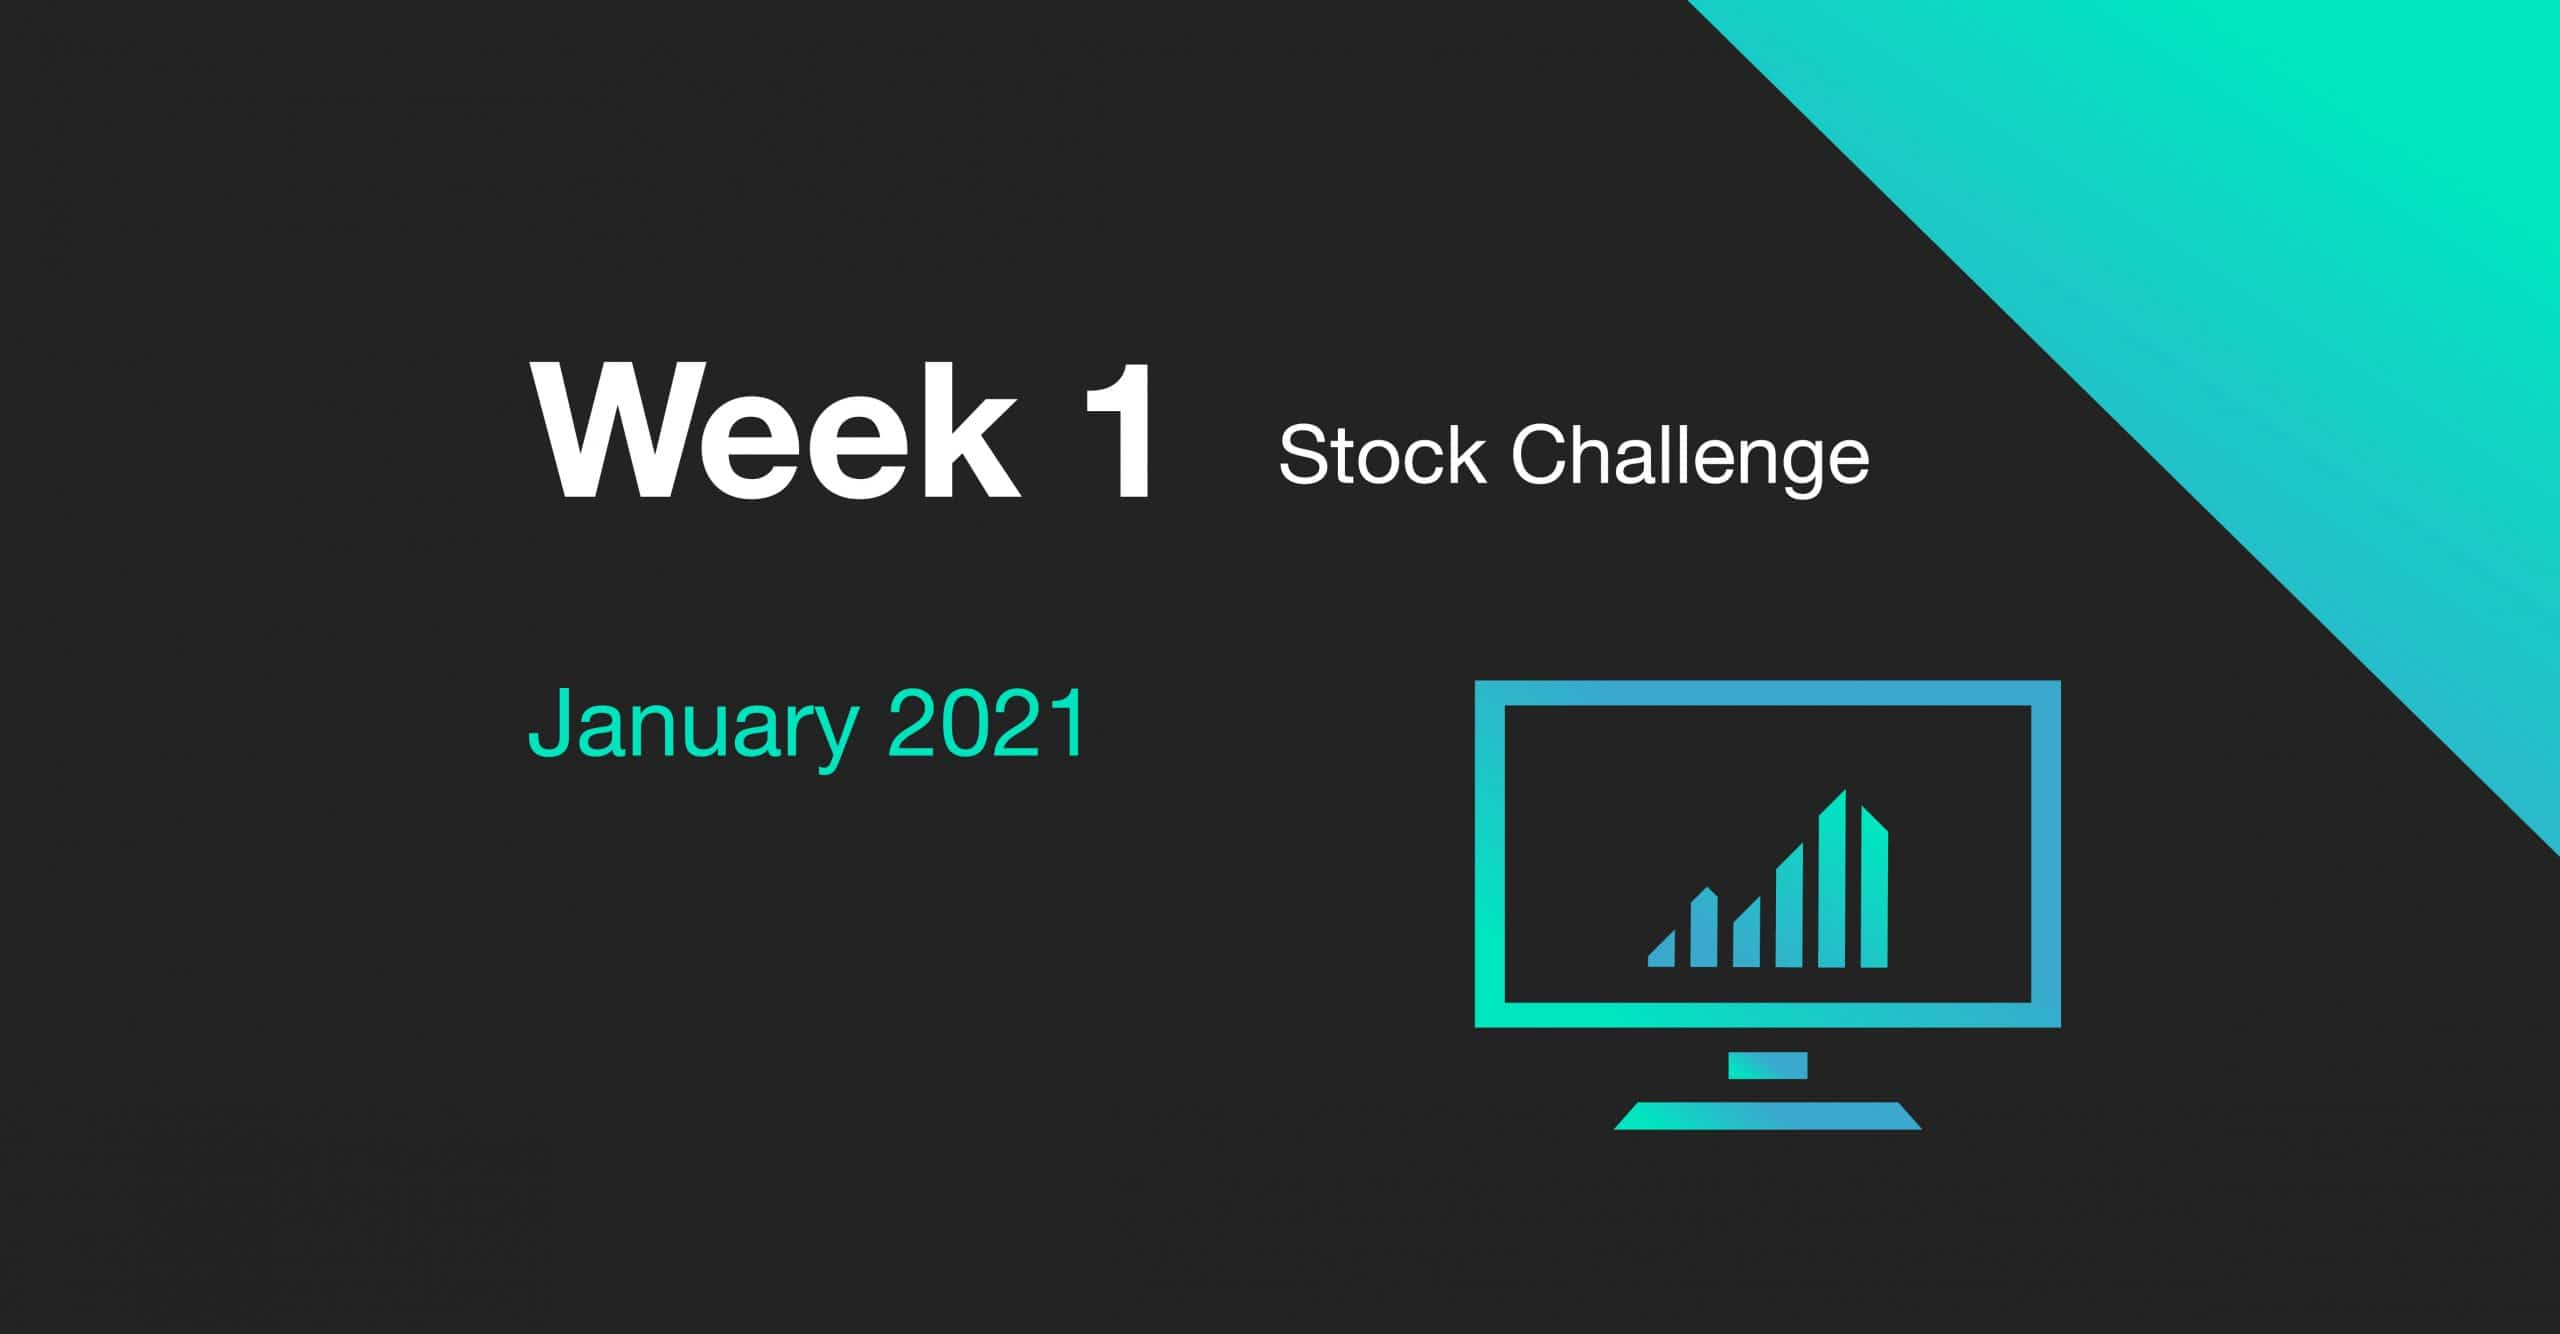 week 1 january 2021 stock challenge cover